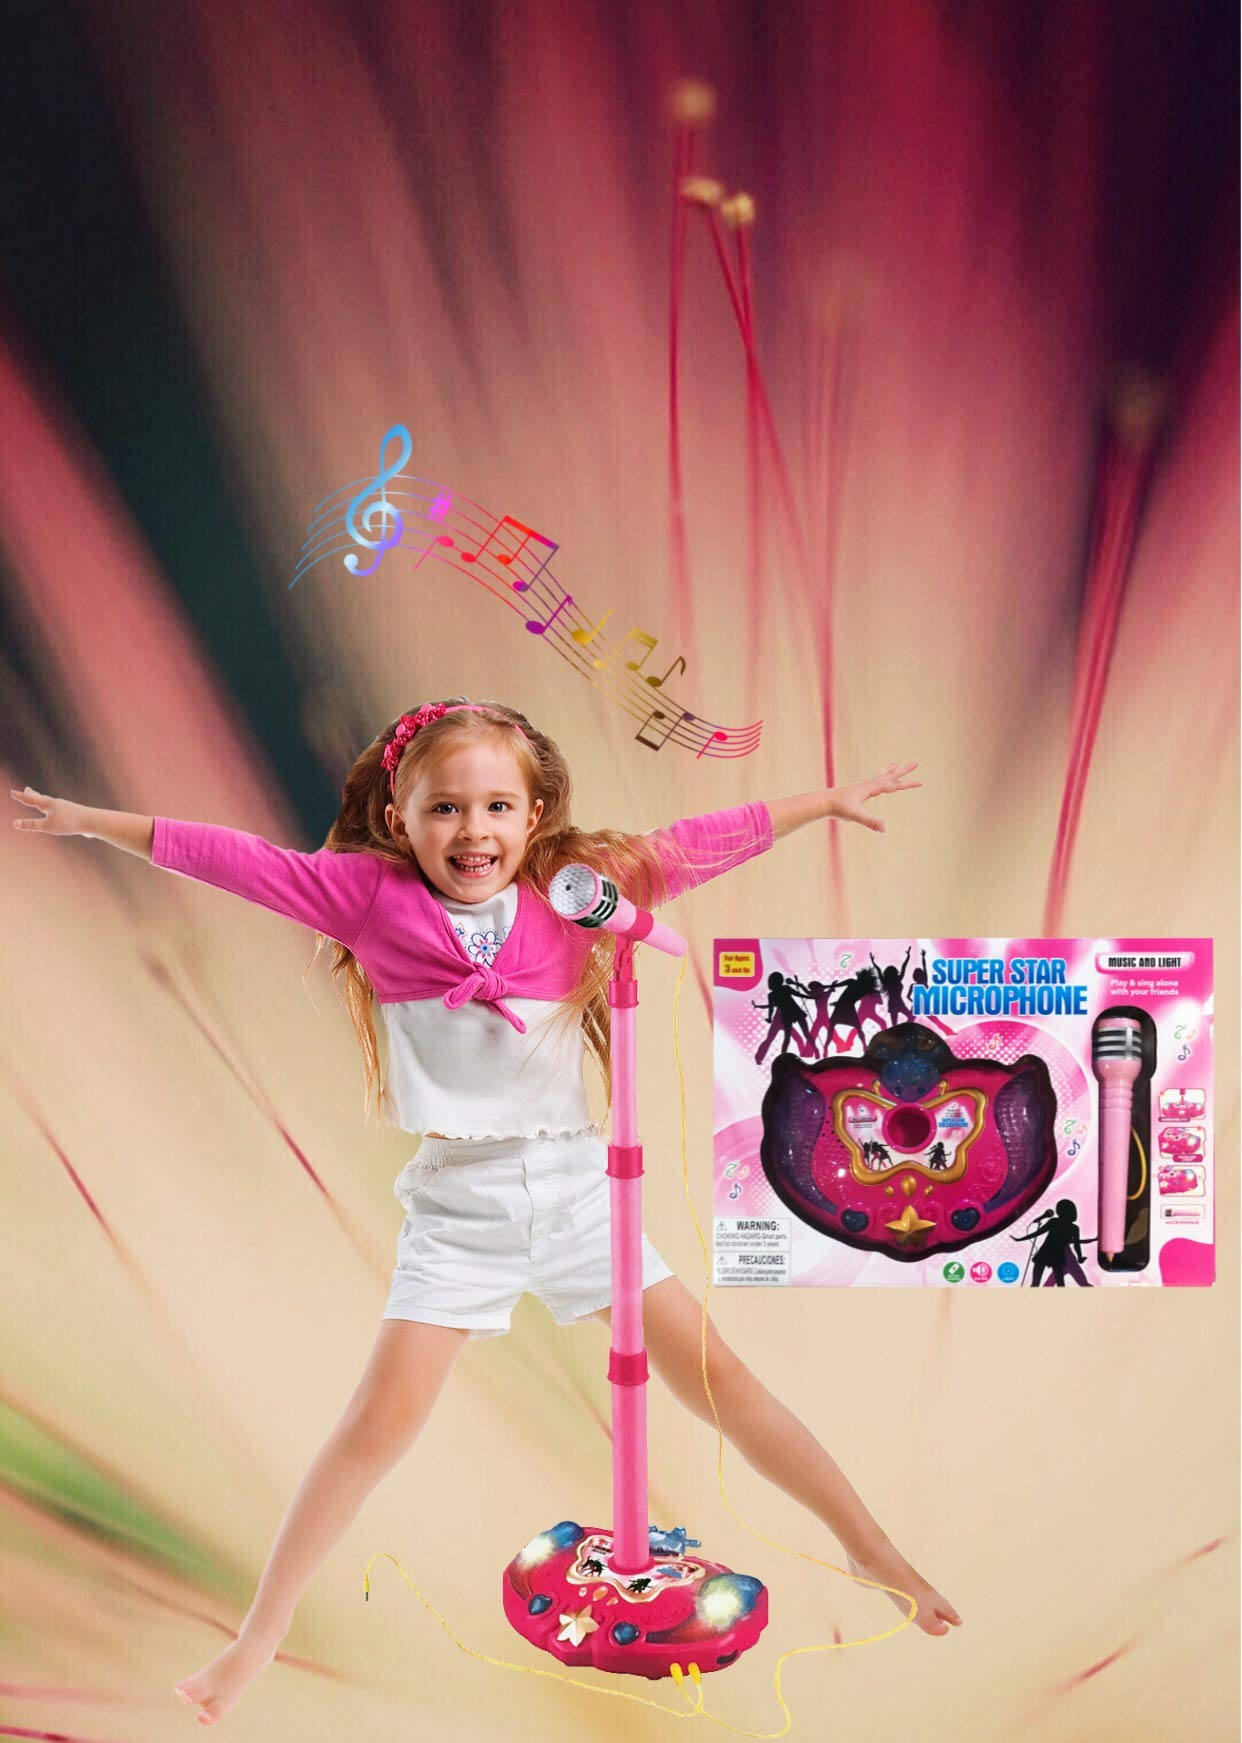 LilPals Princess Karaoke -Children's Toy Stand Up Microphone Play Set w/ Built-in MP3 Player, Speaker, Adjustable Height (Pink) by LilPals (Image #5)